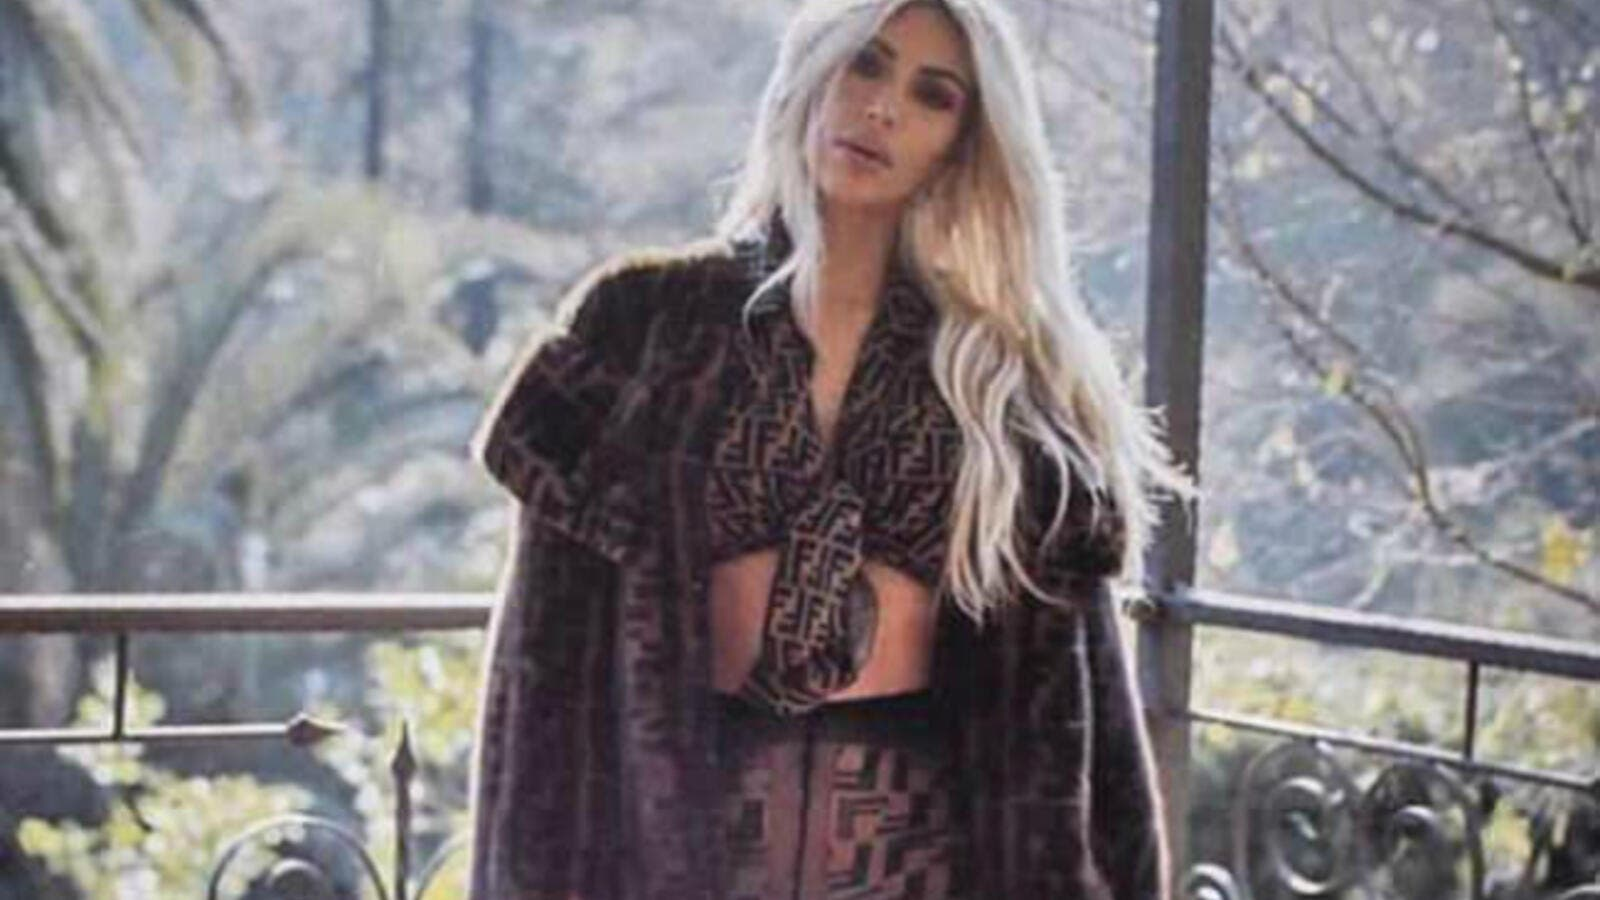 Fierce in Fendi! Kim Kardashian was all about the designer brand Fendi on Instagram Sunday, sharing a sizzling snapshot of herself decked out from head-to-toe in the Italian brand (Source: Kim Kardashian - Instagram)